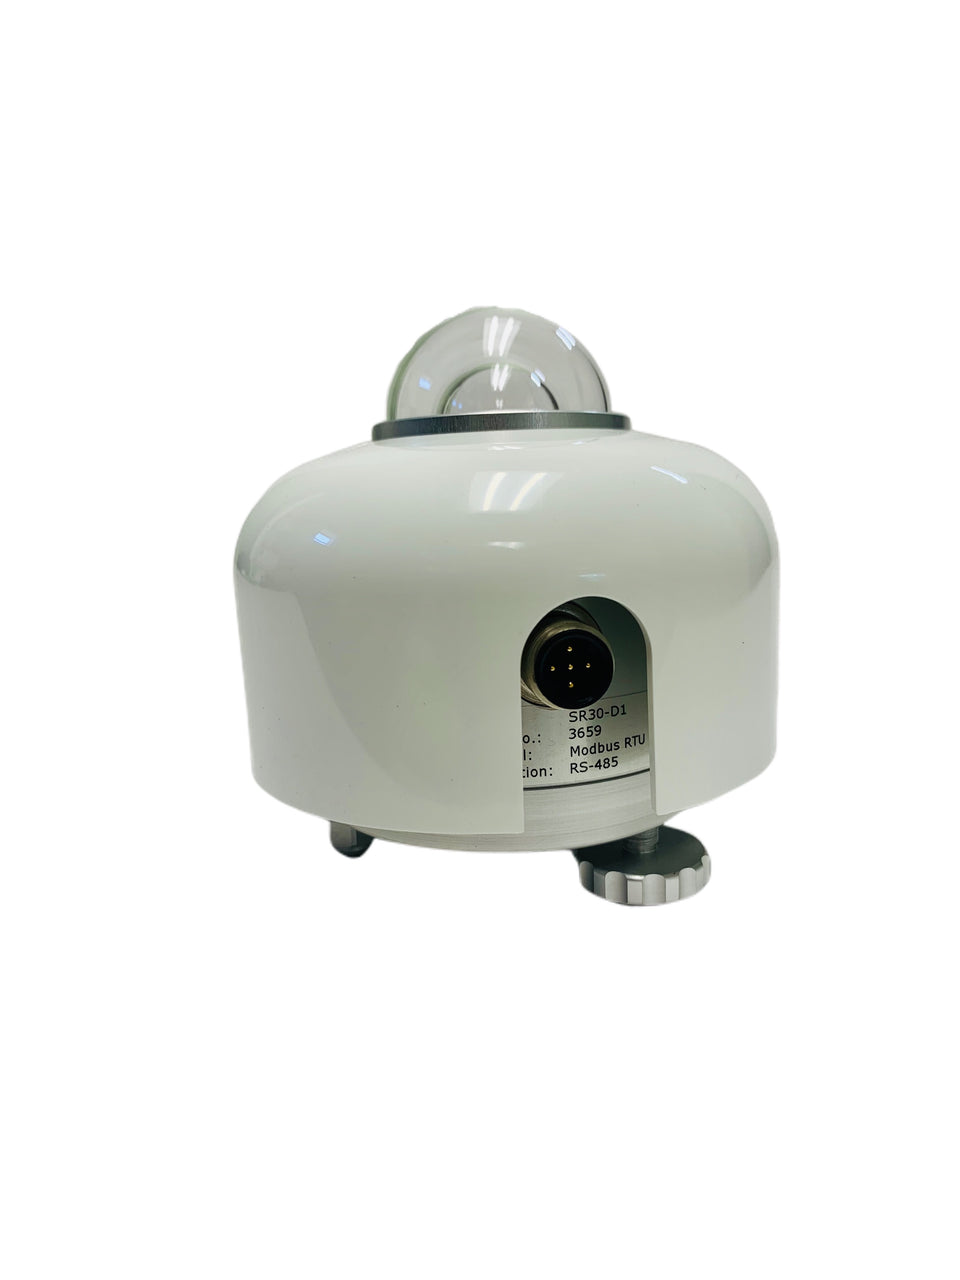 Hukseflux SR30-D1 Next Level Digital Secondary Standard Pyranometer